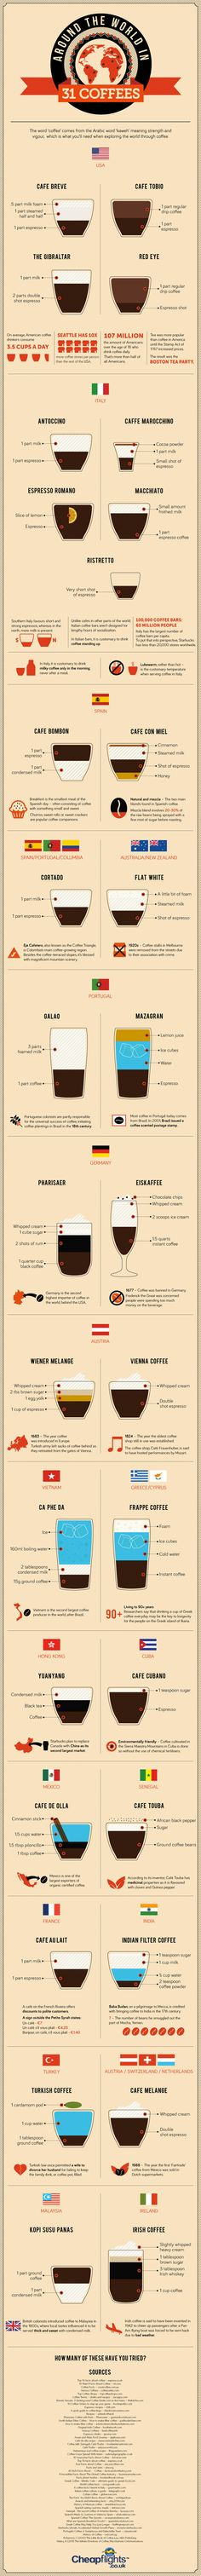 31 Ways To Drink Coffee Around the World #infografía